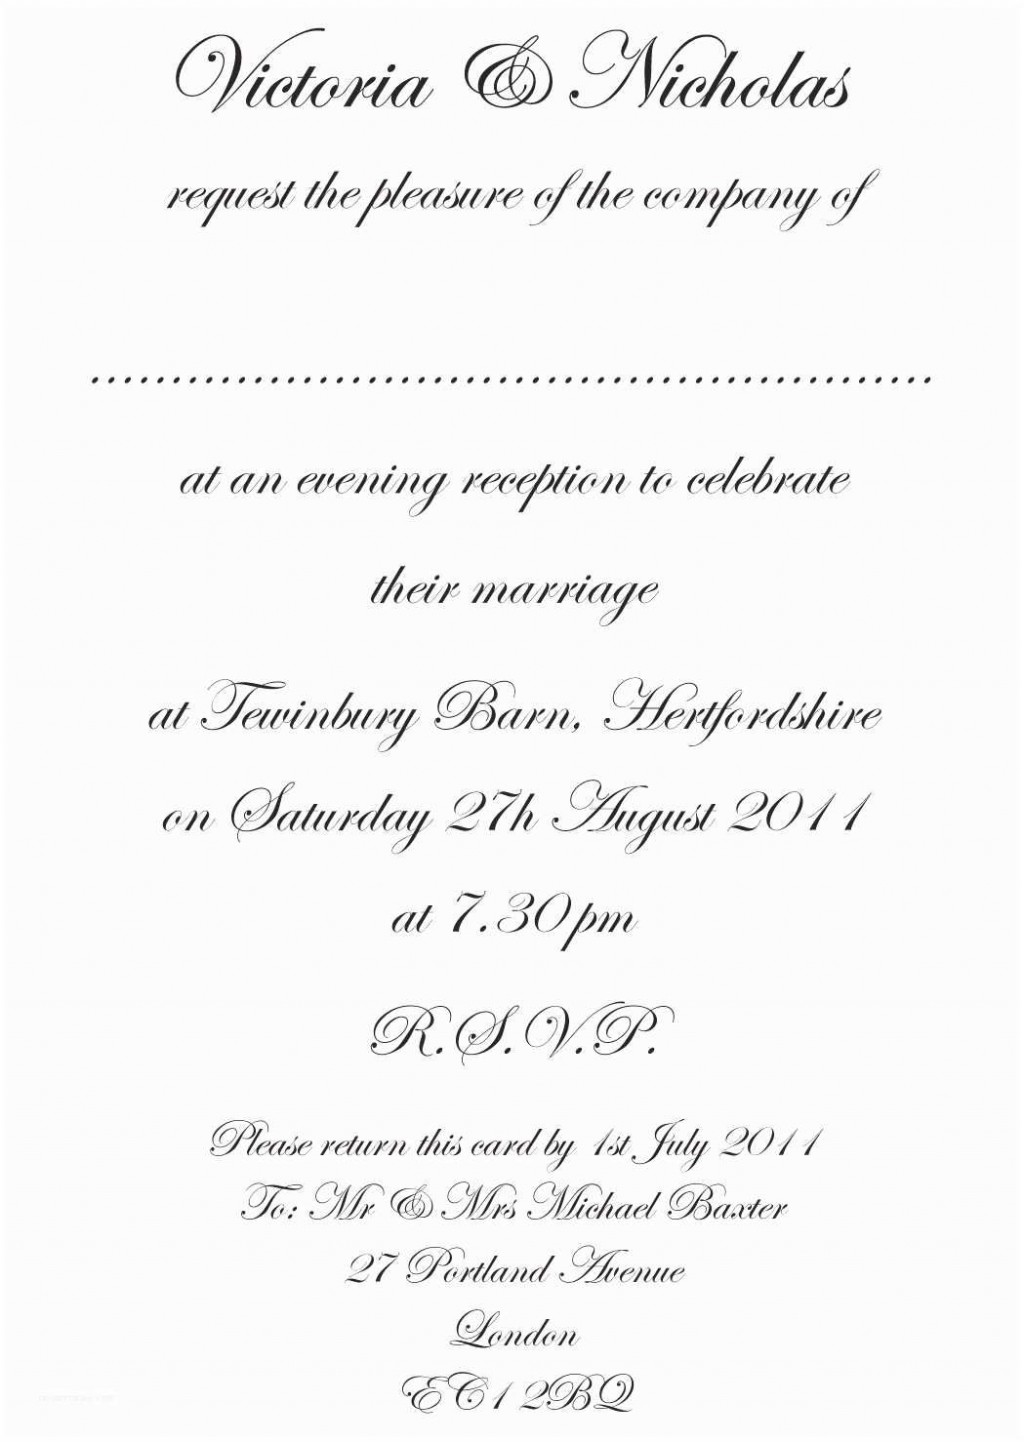 010 Astounding Formal Wedding Invitation Template Highest Quality  Templates Email Format Wording FreeLarge